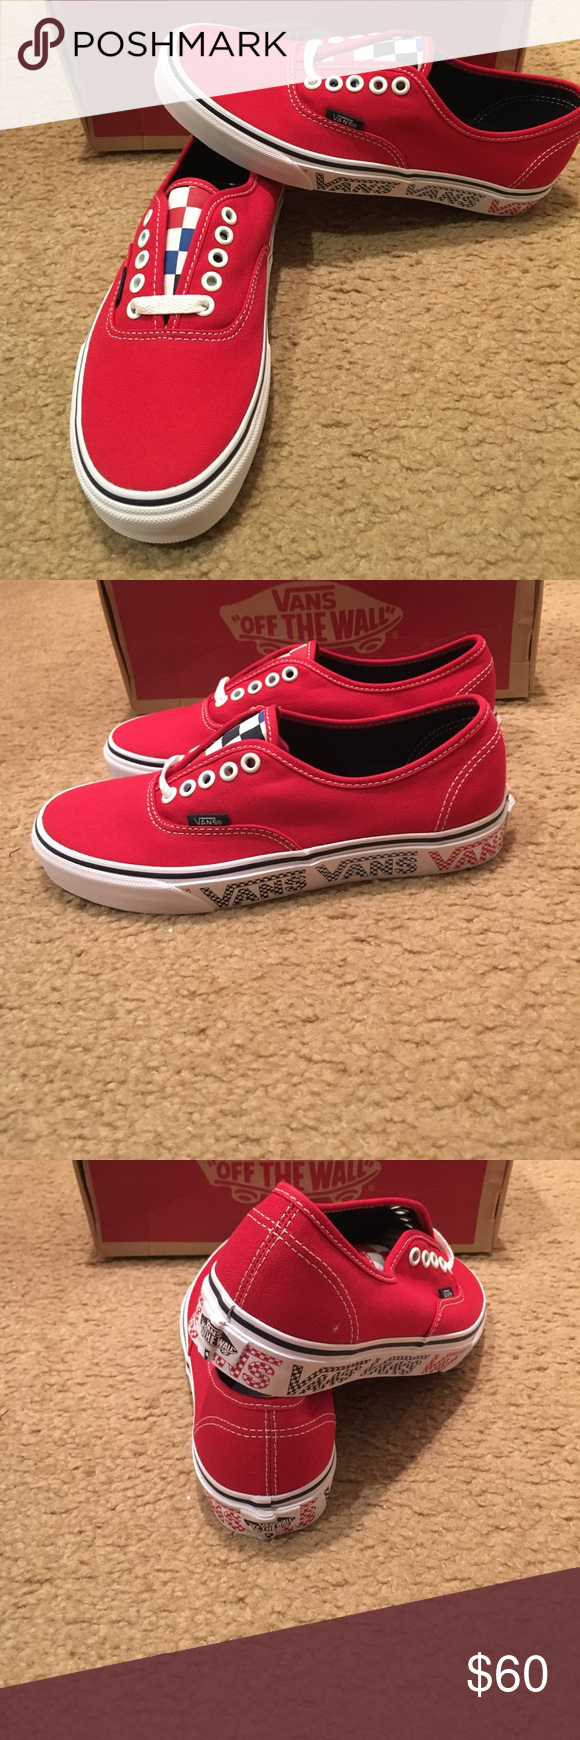 eb86314d79ce Vans Checker Tape Authentic Vans New in box. Red Vans Shoes Sneakers ...